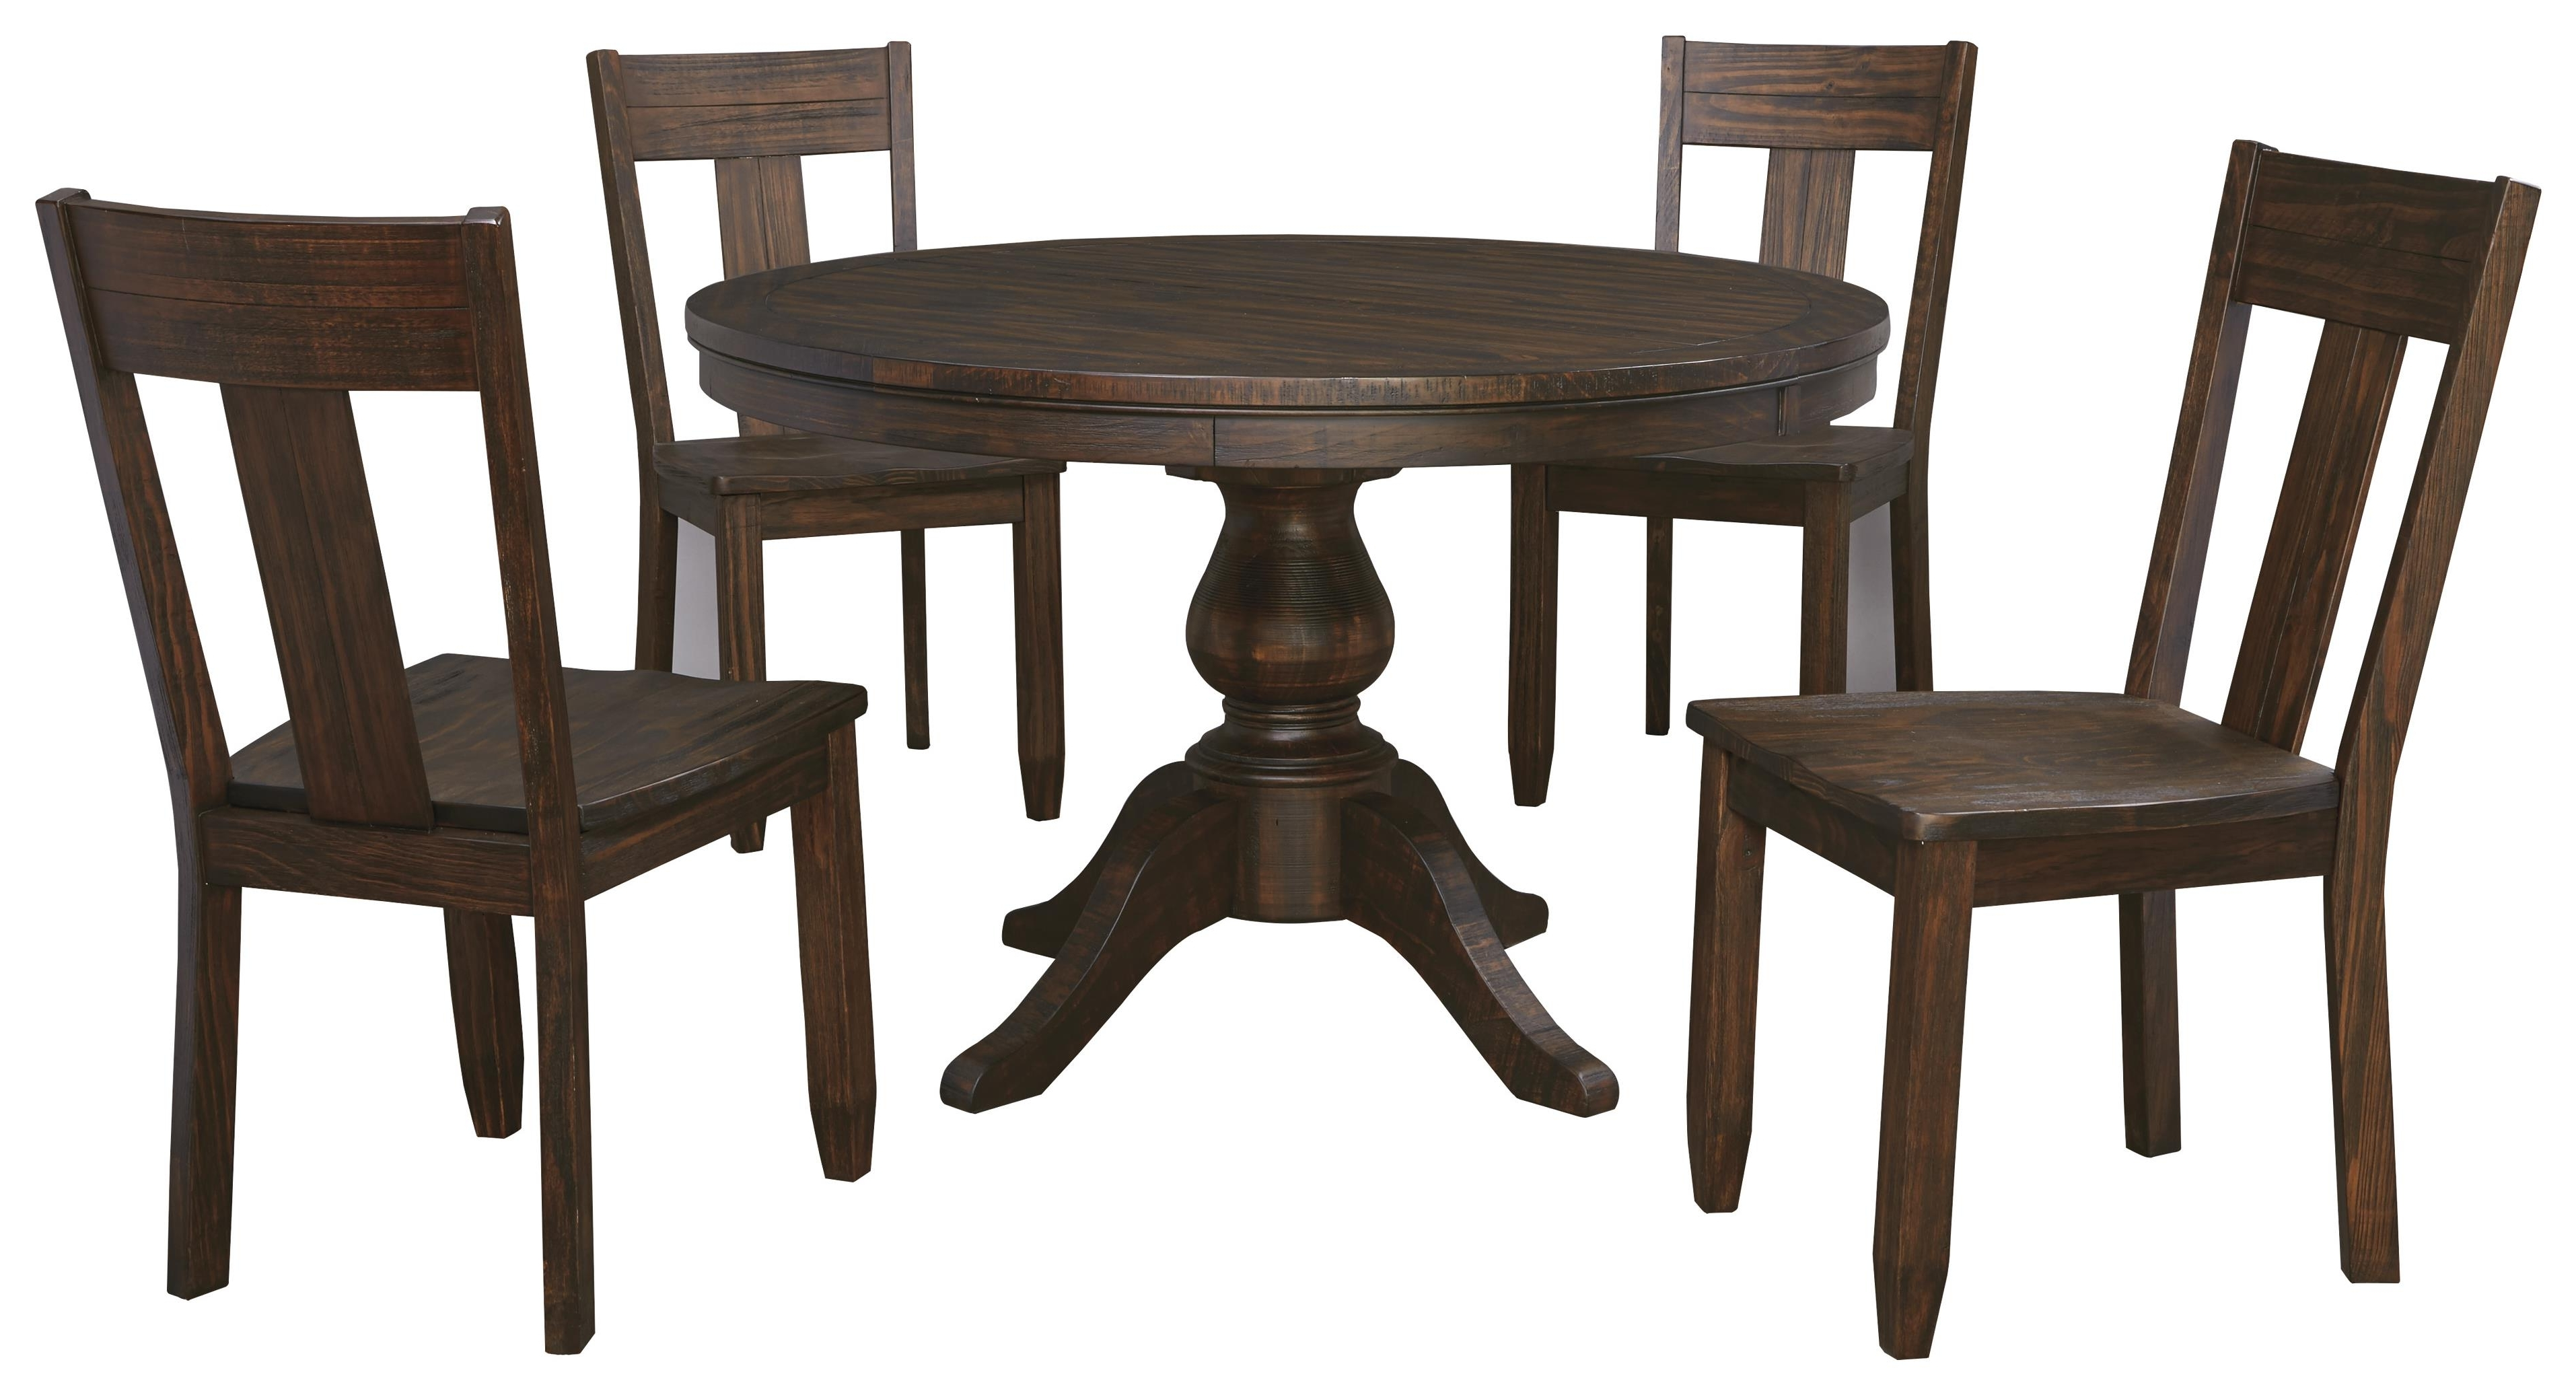 5 Piece Round Dining Table Set – Castrophotos Pertaining To Latest Macie 5 Piece Round Dining Sets (View 5 of 25)